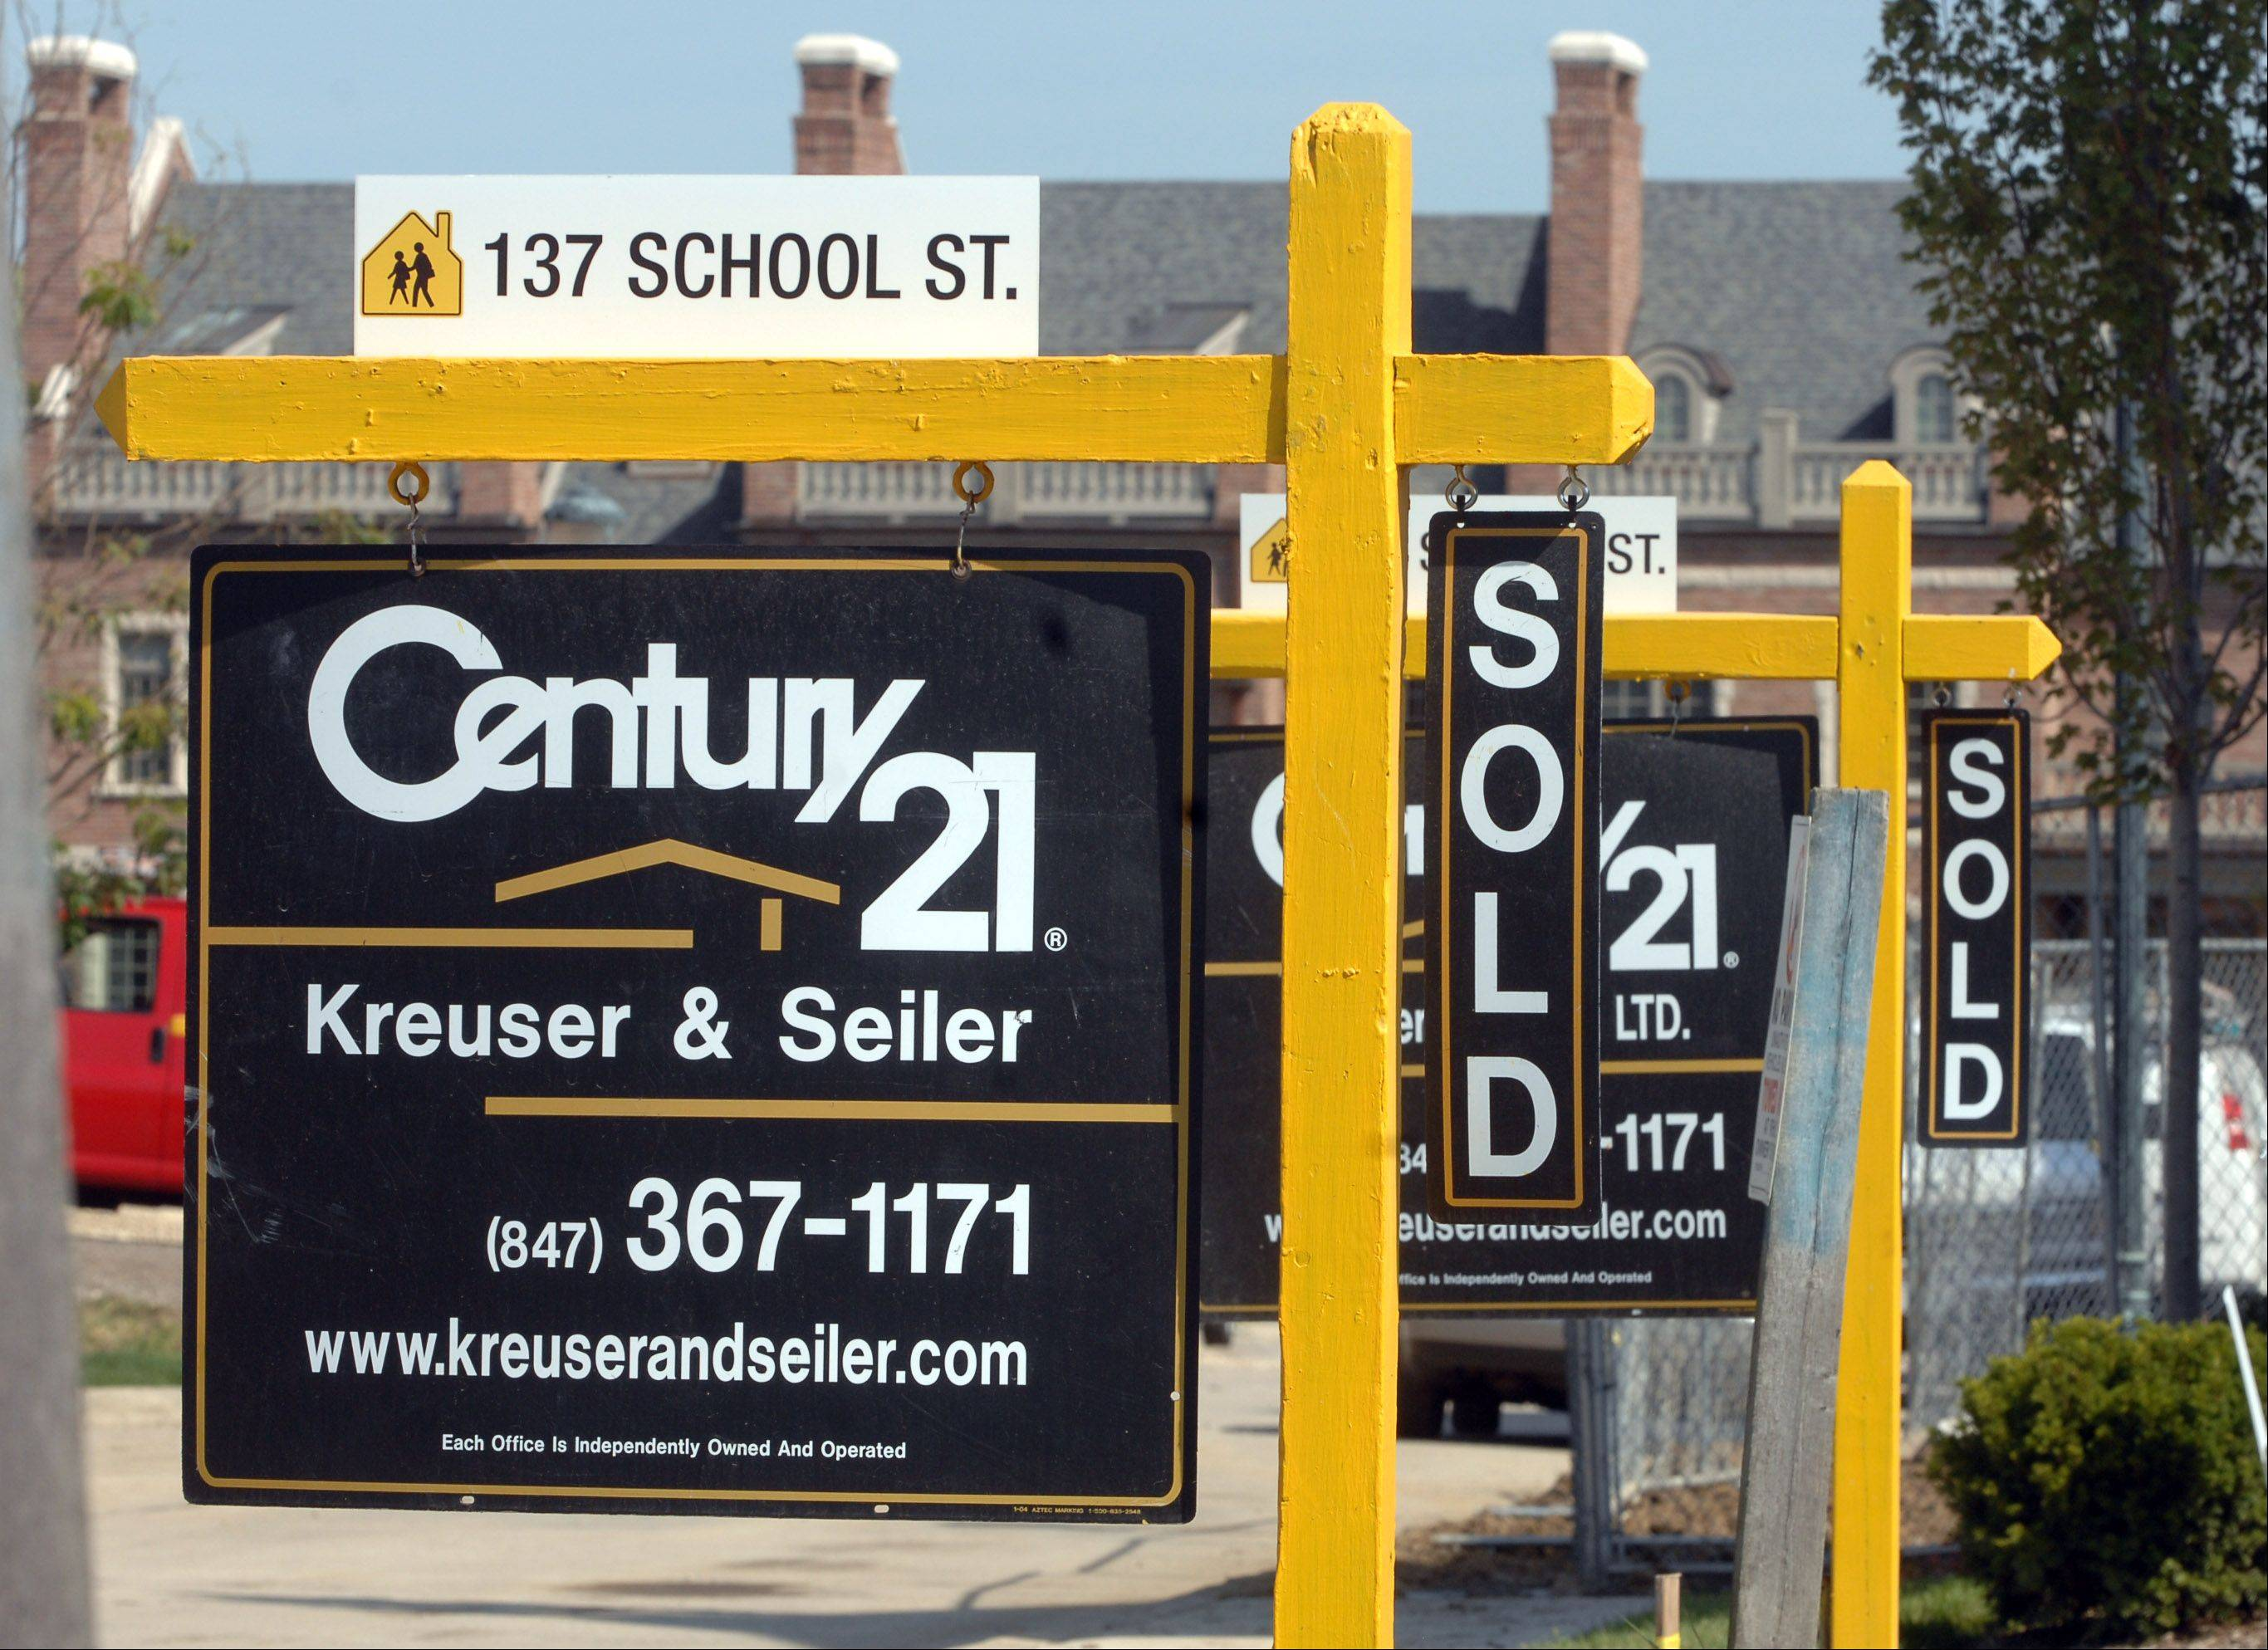 """Sold"" signs, like these at the School Street development in downtown Libertyville, are increasing in Lake County, which had 726 homes sold during August compared to 513 the year before, according to a report Wednesday by the Illinois Association of Realtors."